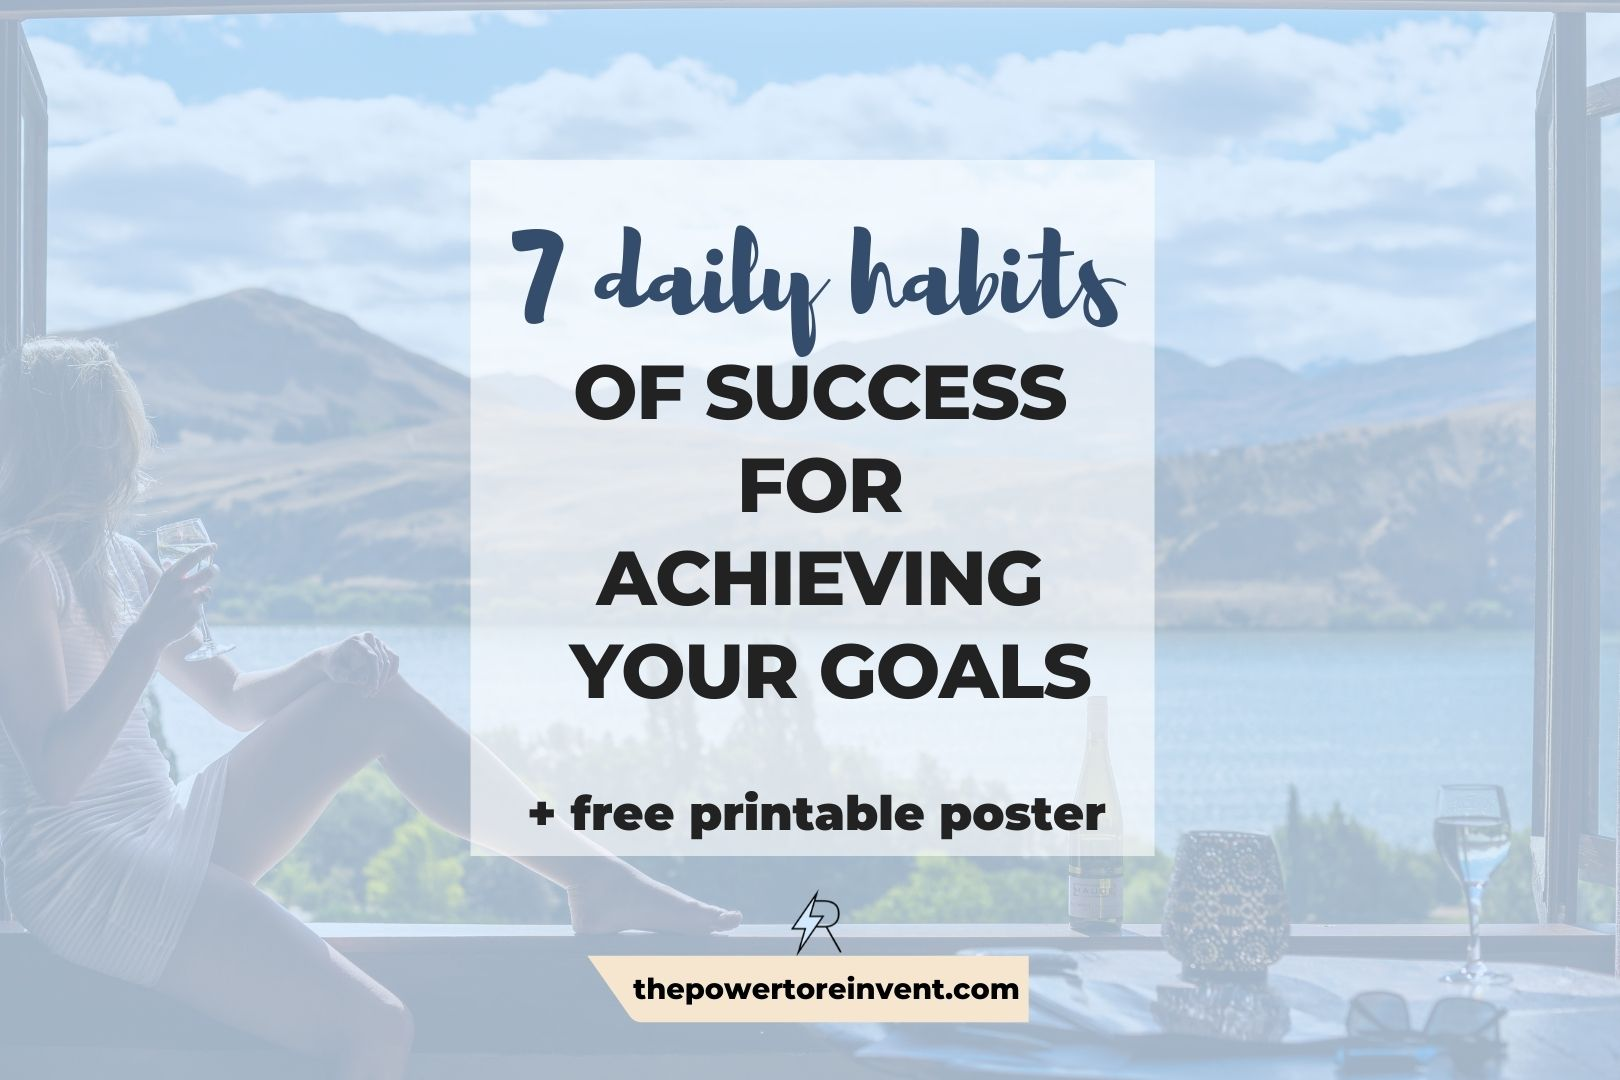 7 daily habits of success for achieving your goals header